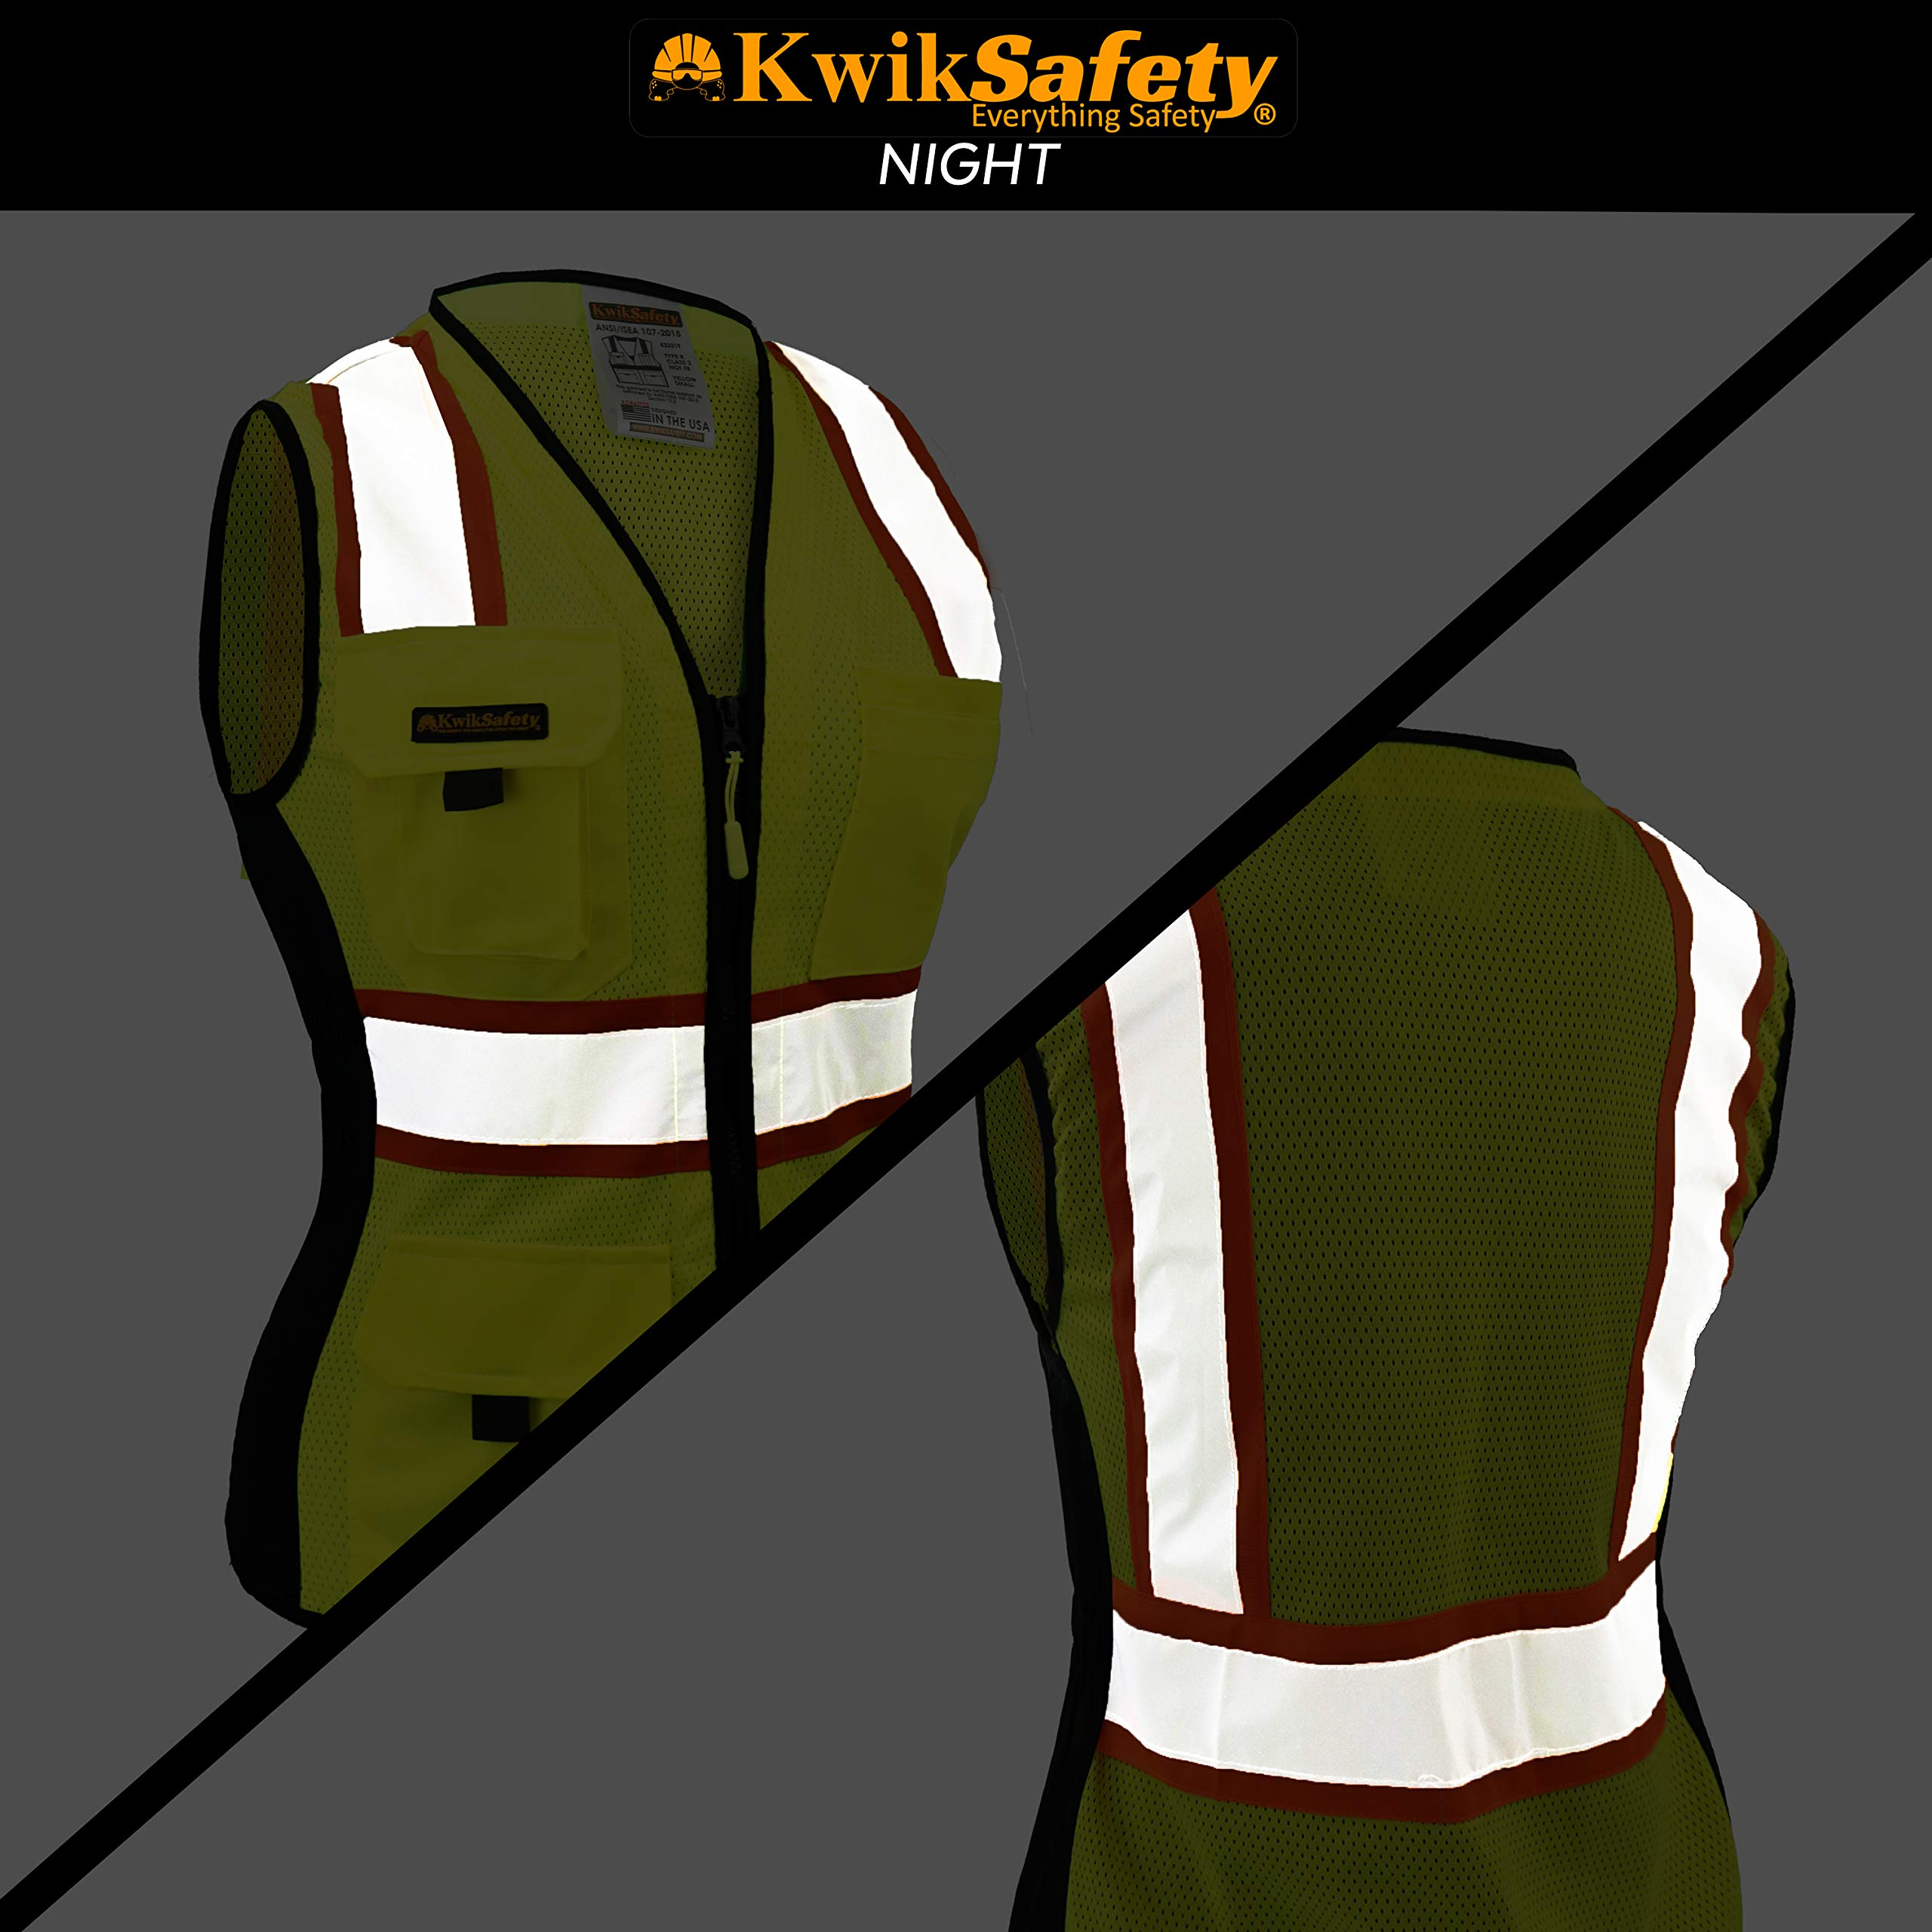 KwikSafety (Charlotte, NC) FIRST LADY Safety Vest for Women | Class 2 ANSI OSHA PPE | High Visibility Heavy Duty Mesh Pockets Zipper | Hi-Vis Construction Work Hi-Vis Surveyor Female | Yellow Large by KwikSafety (Image #2)